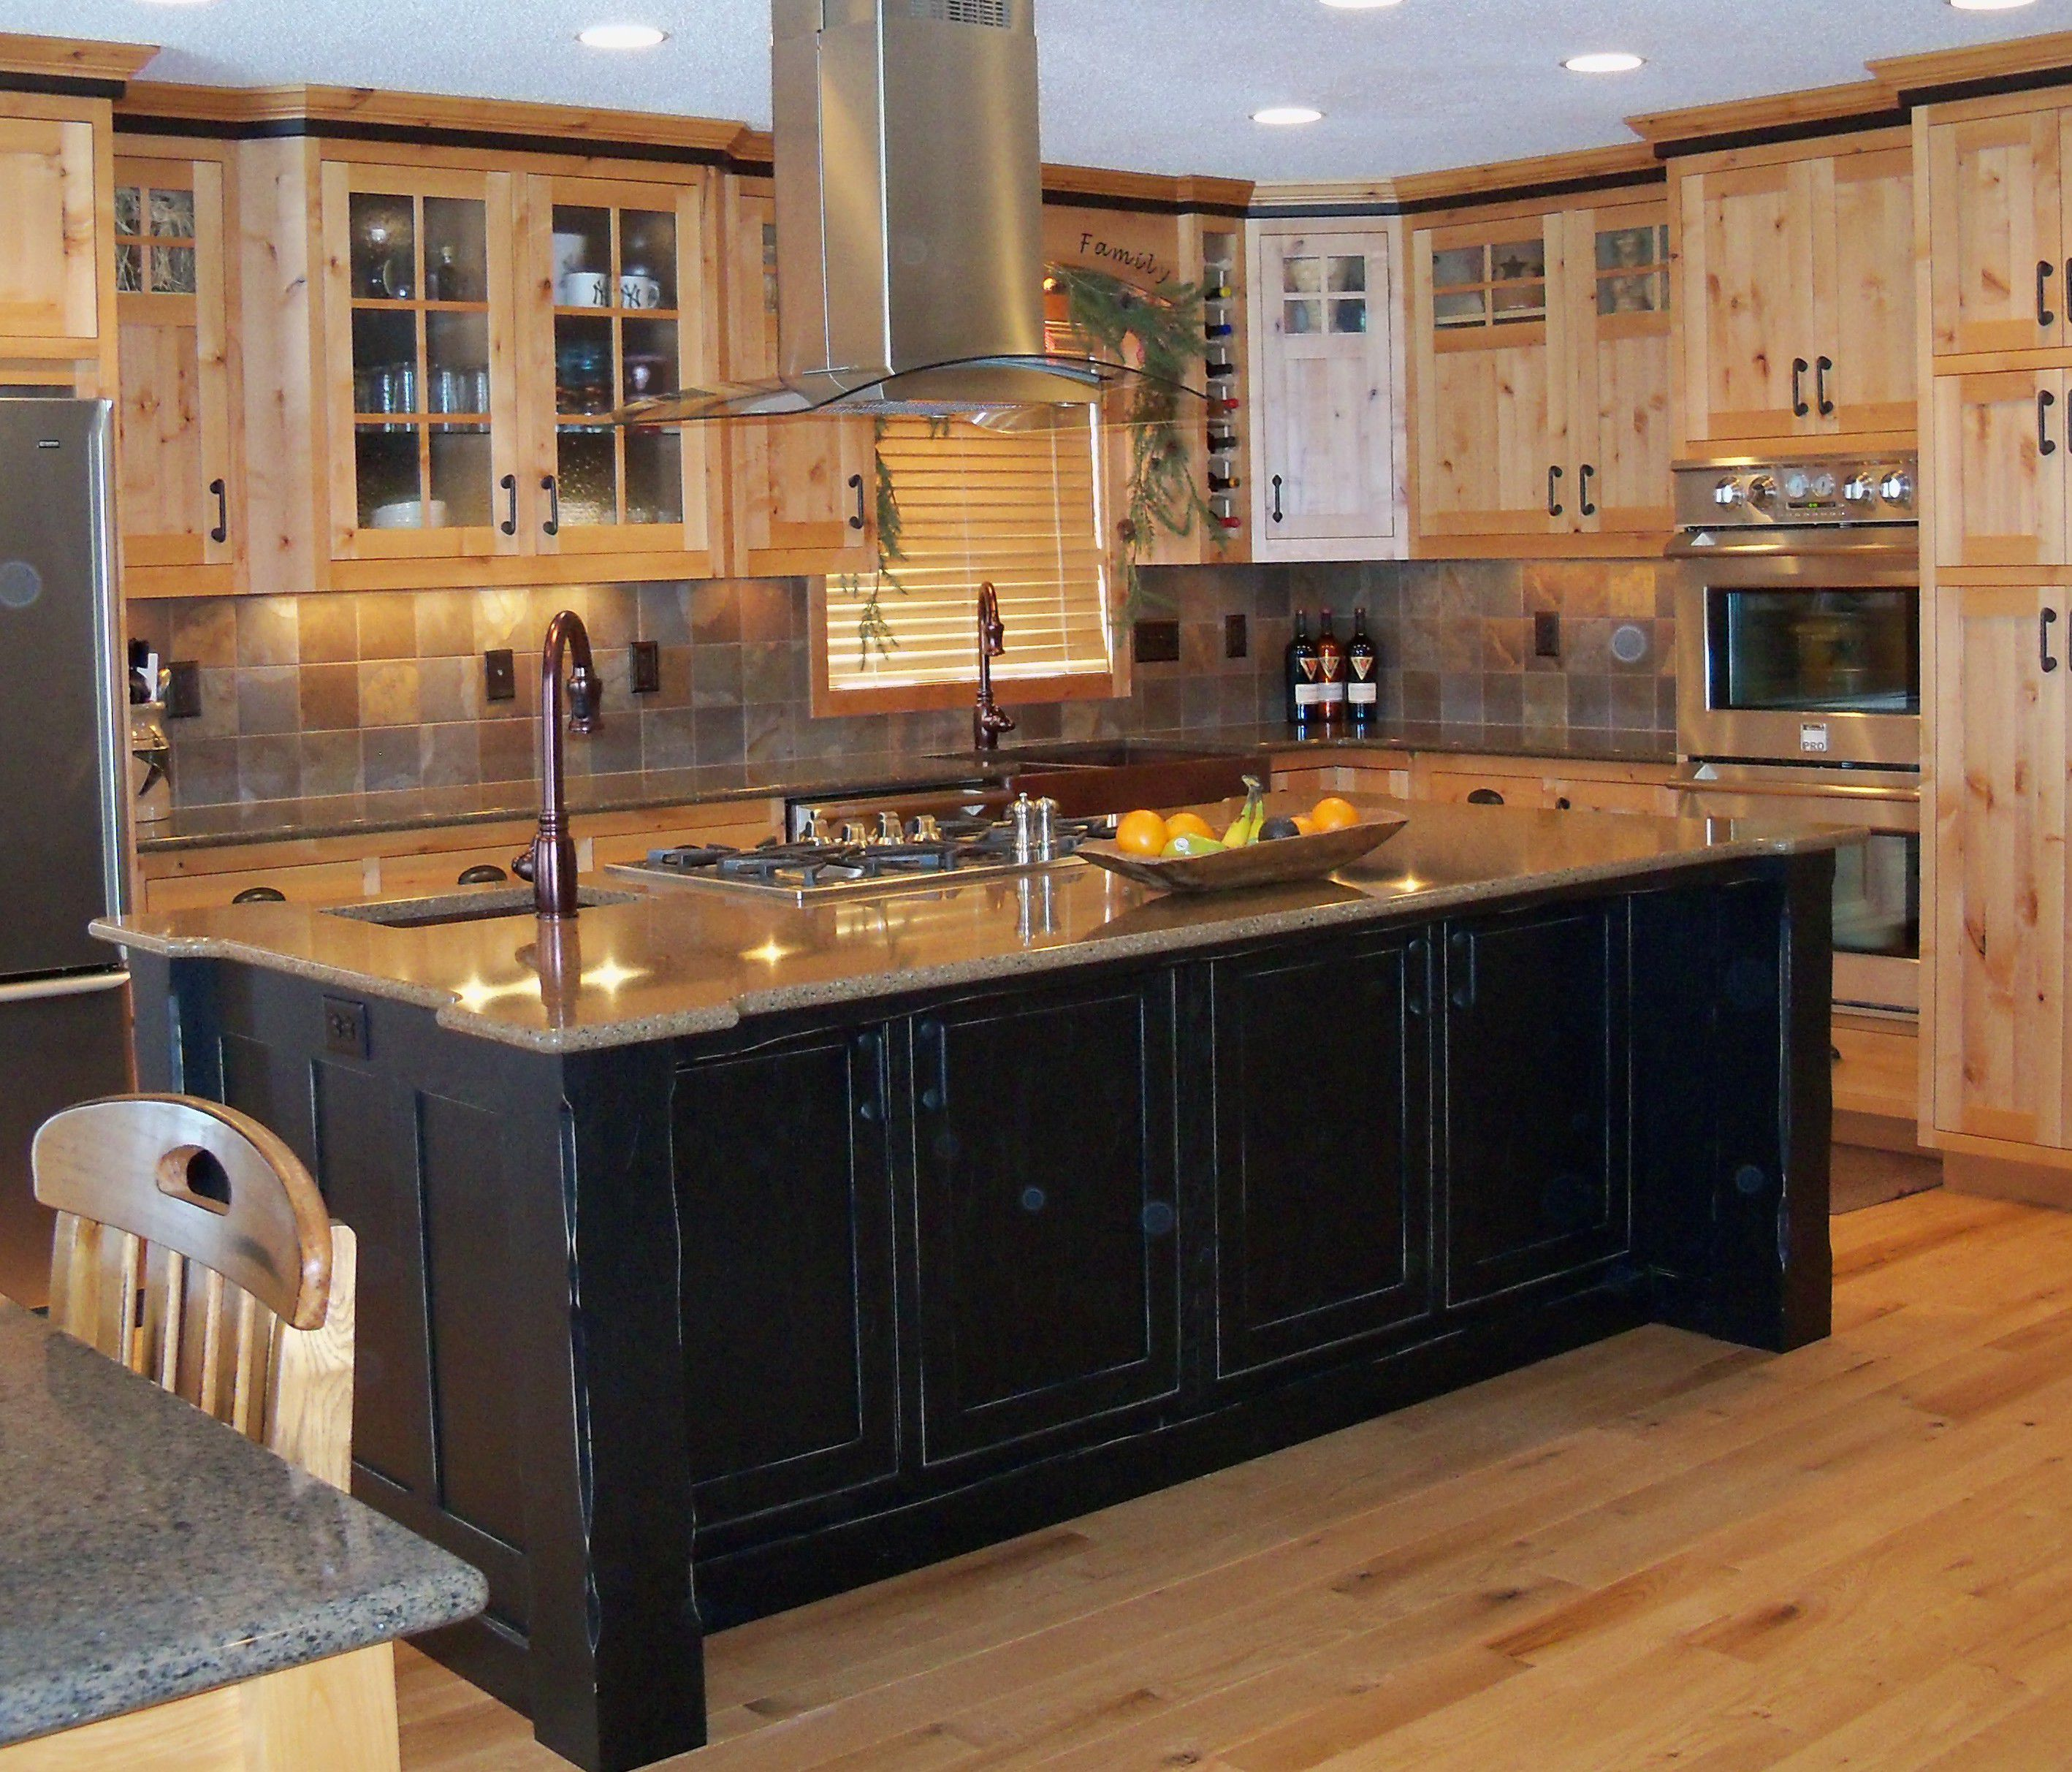 Built Black Kitchen Island in Your Modern Home MidCityEast